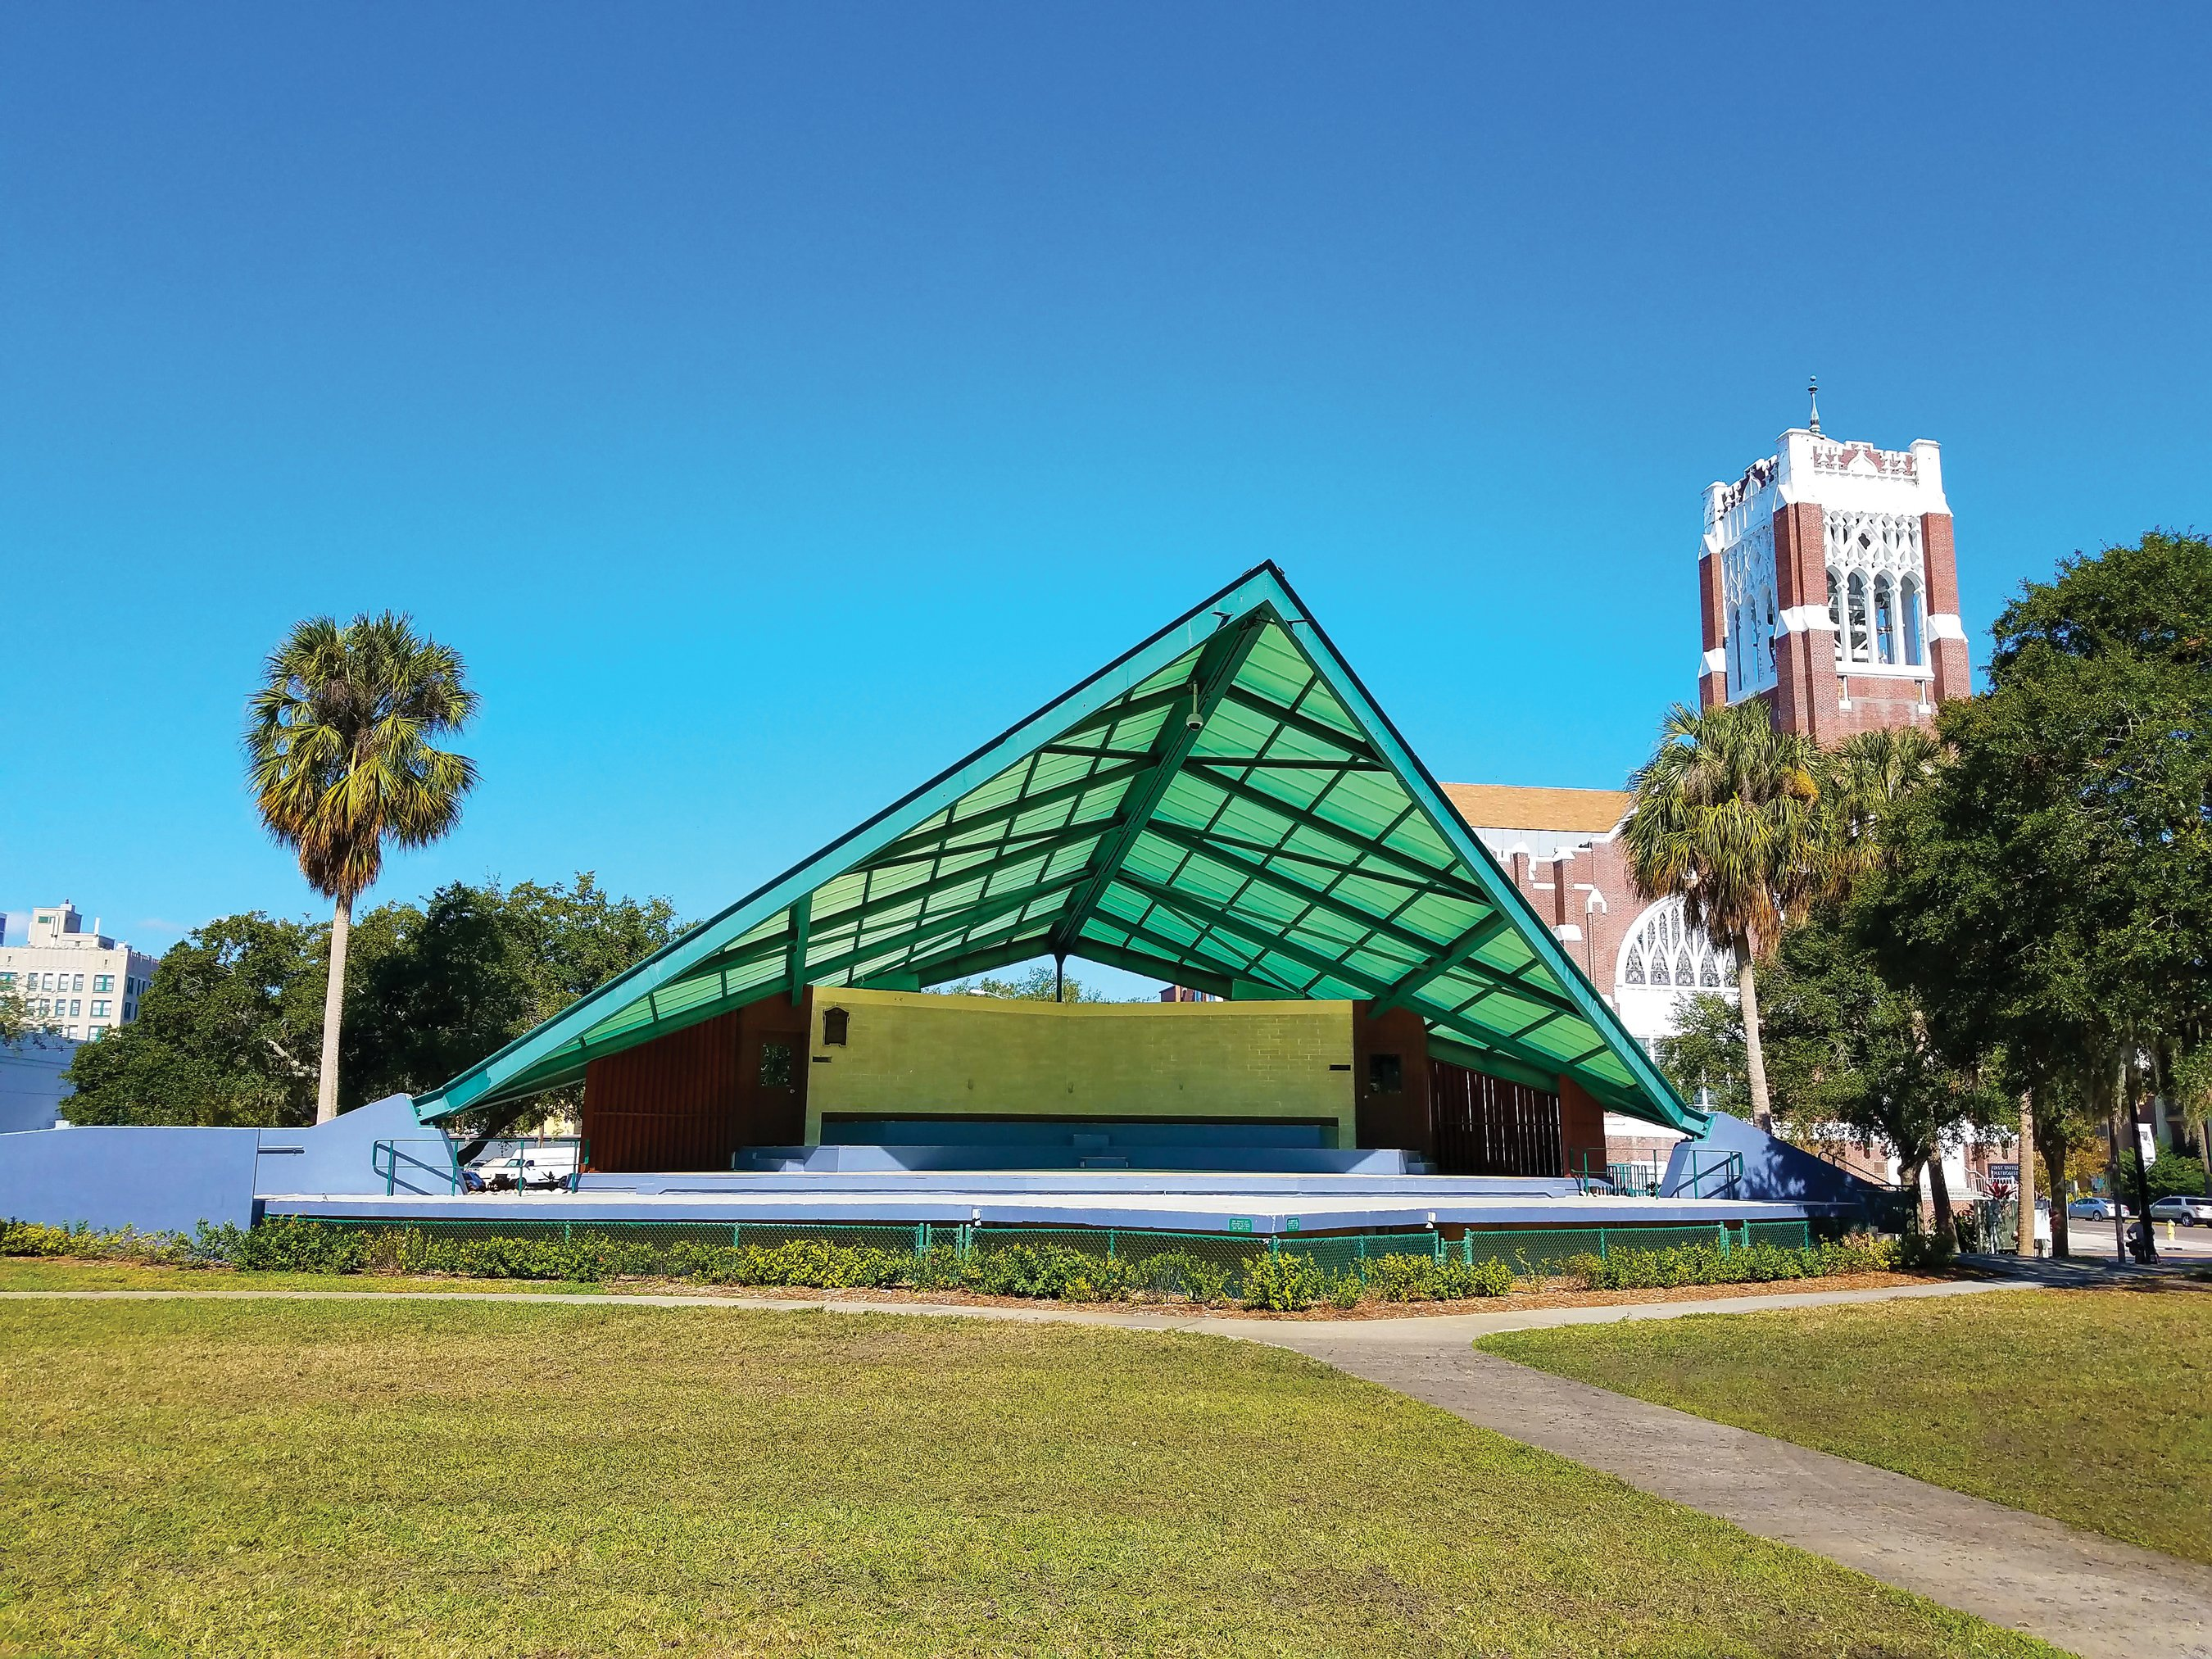 In 1954, modernist architect William Harvard won the American Institute of Architecture's Award of Excellence for his design of the Williams Park band shell